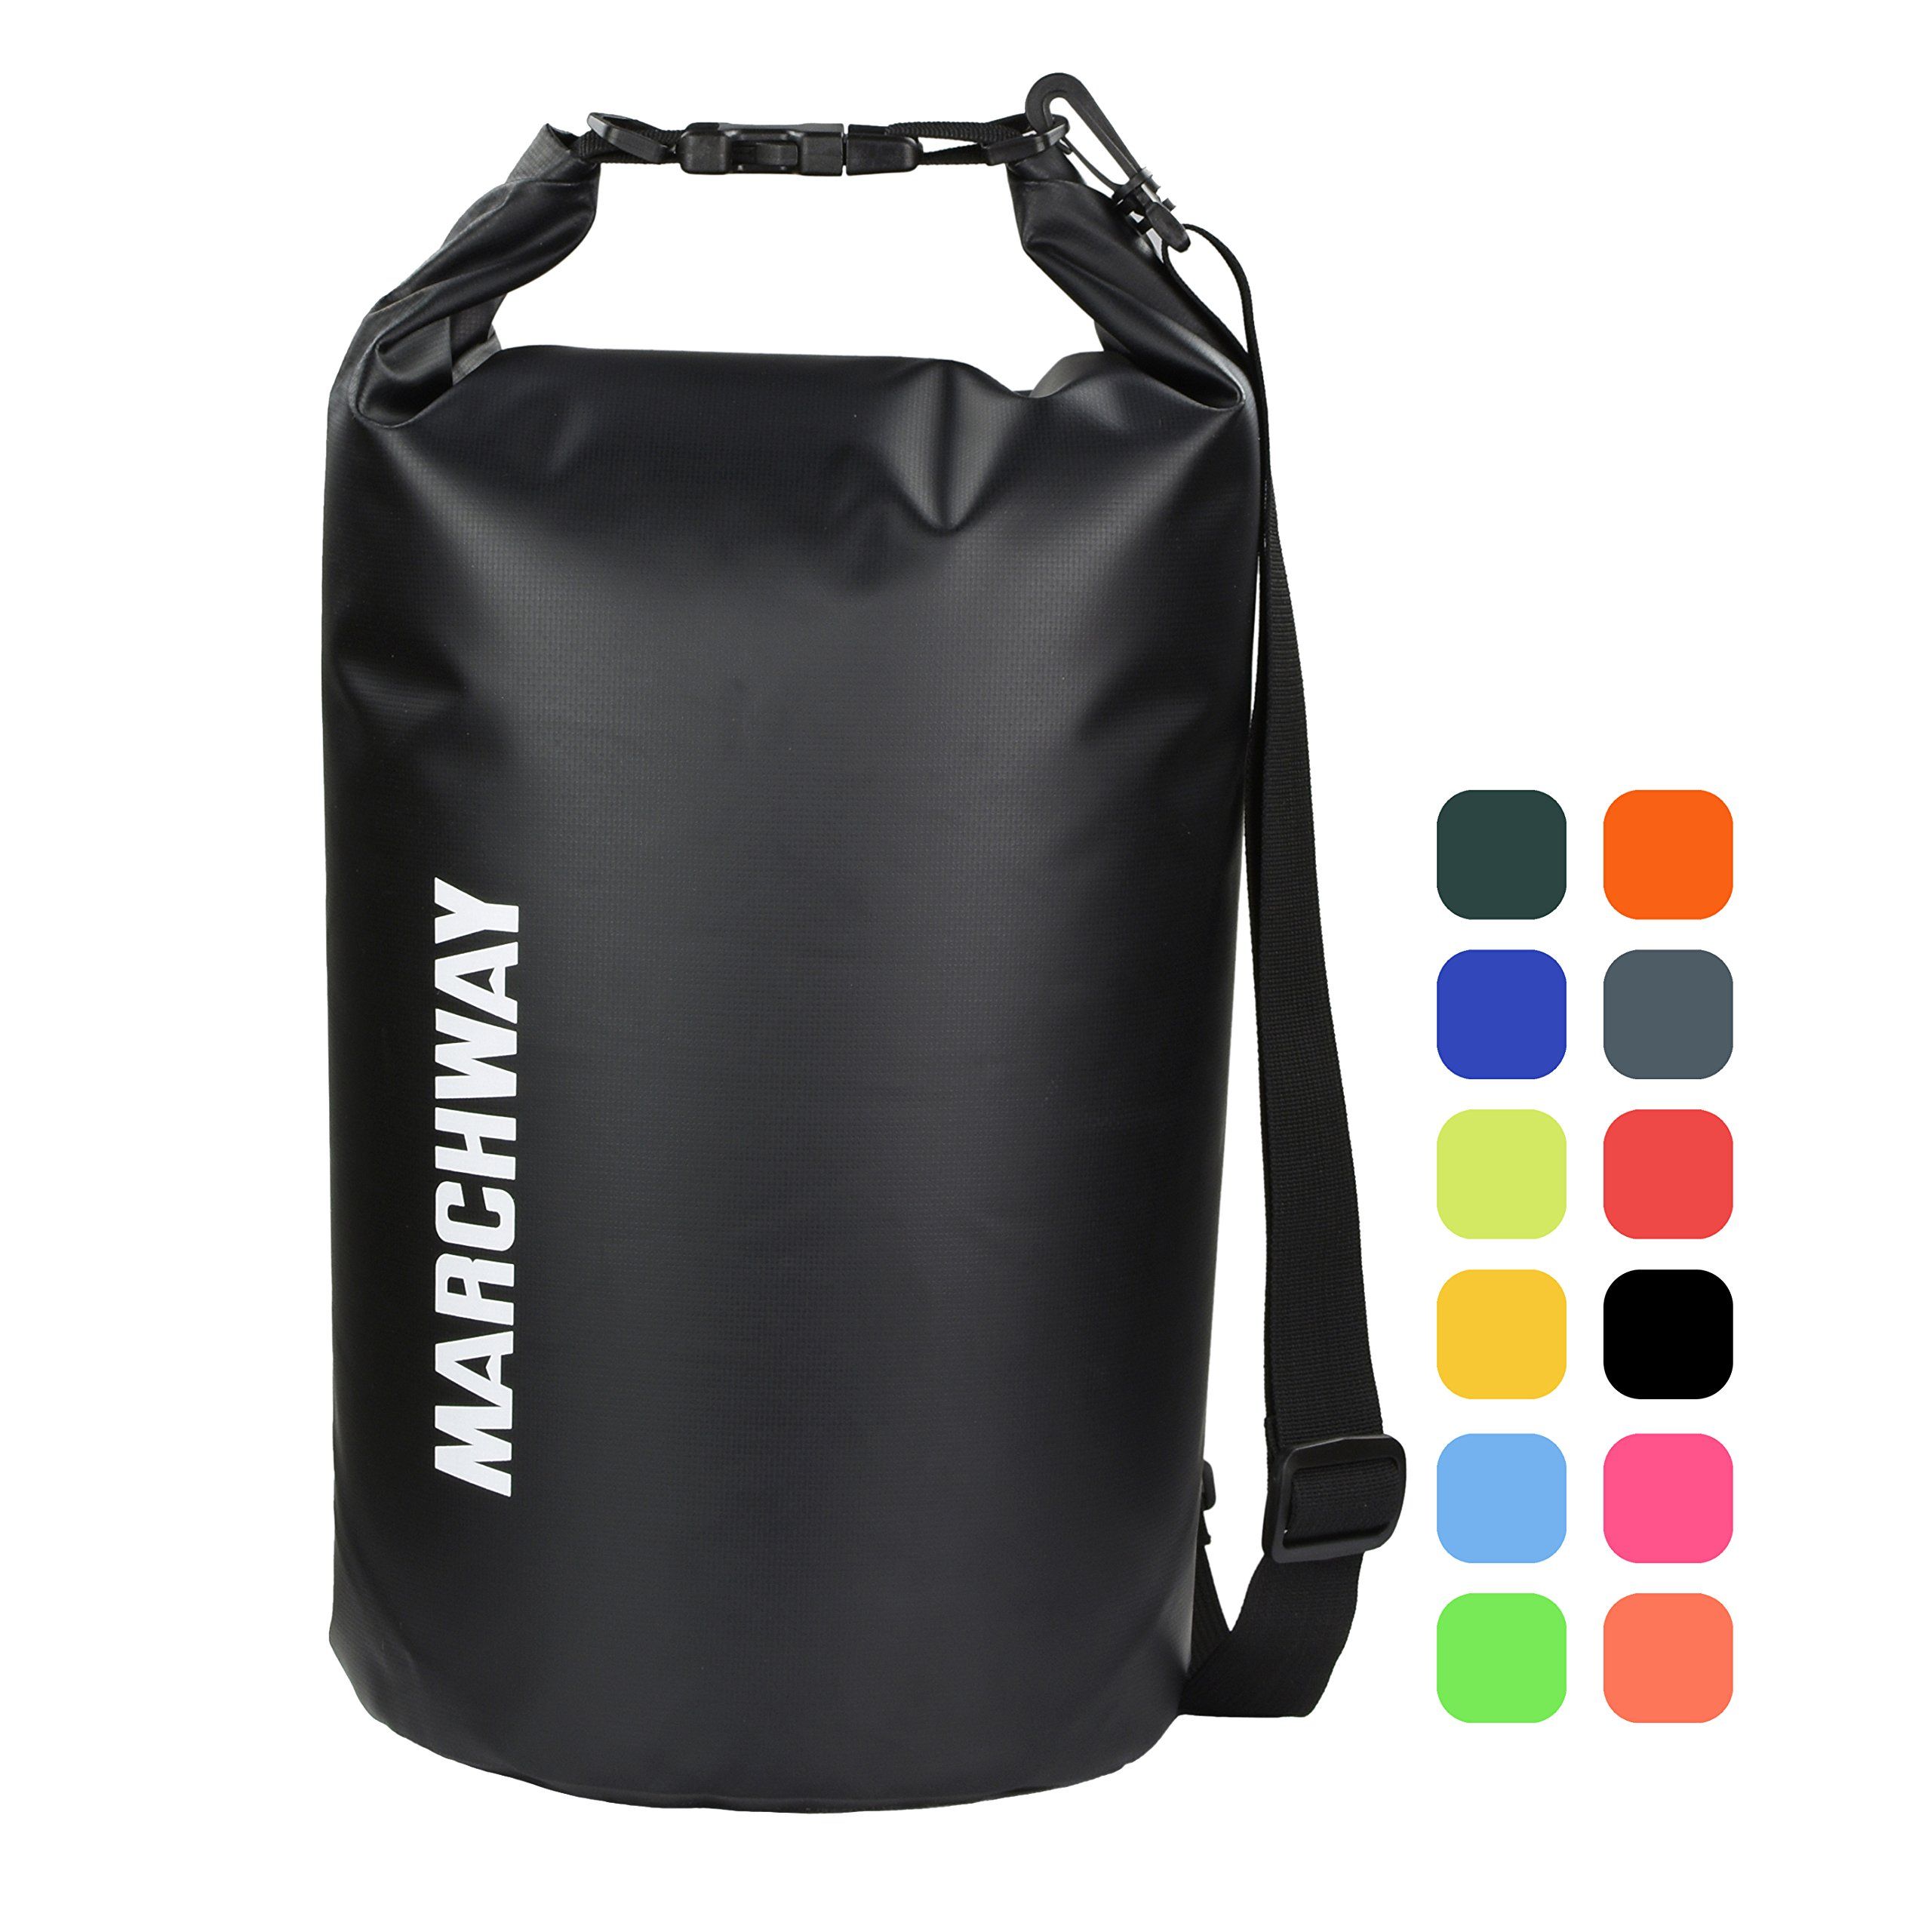 MARCHWAY Floating Waterproof Dry Bag Backpack 5L/10L/20L/30L/40L, Roll Top Dry Sack for Kayaking Rafting Boating Swimming Camping Hiking Beach Fishing Backpacking Mountaineering Paddling (Black, 10L) by MARCHWAY